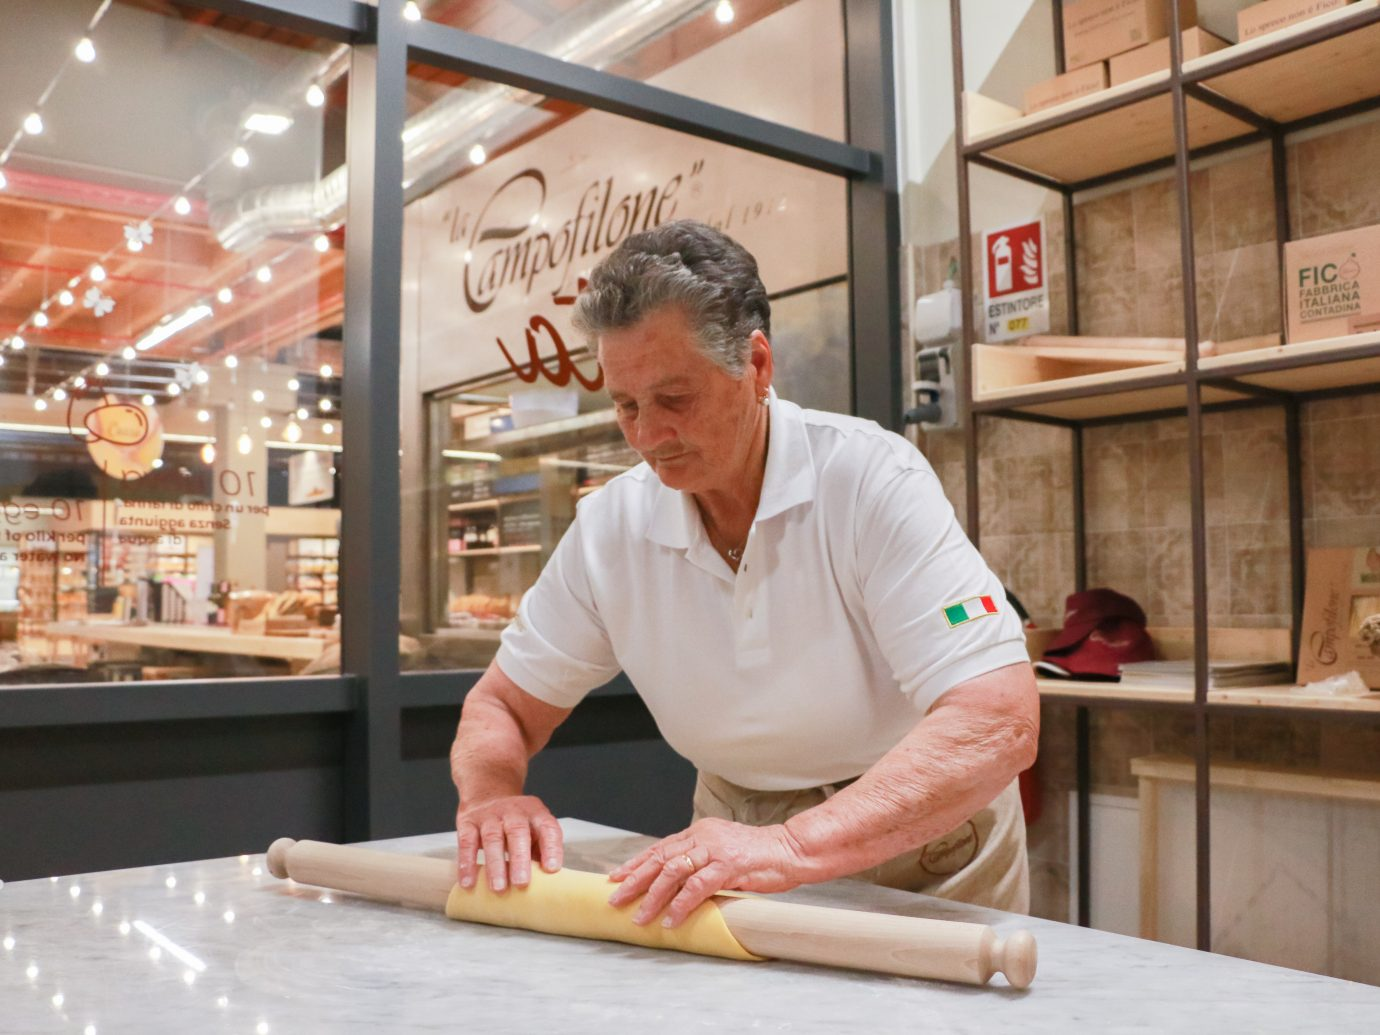 Making pasta at Eataly World